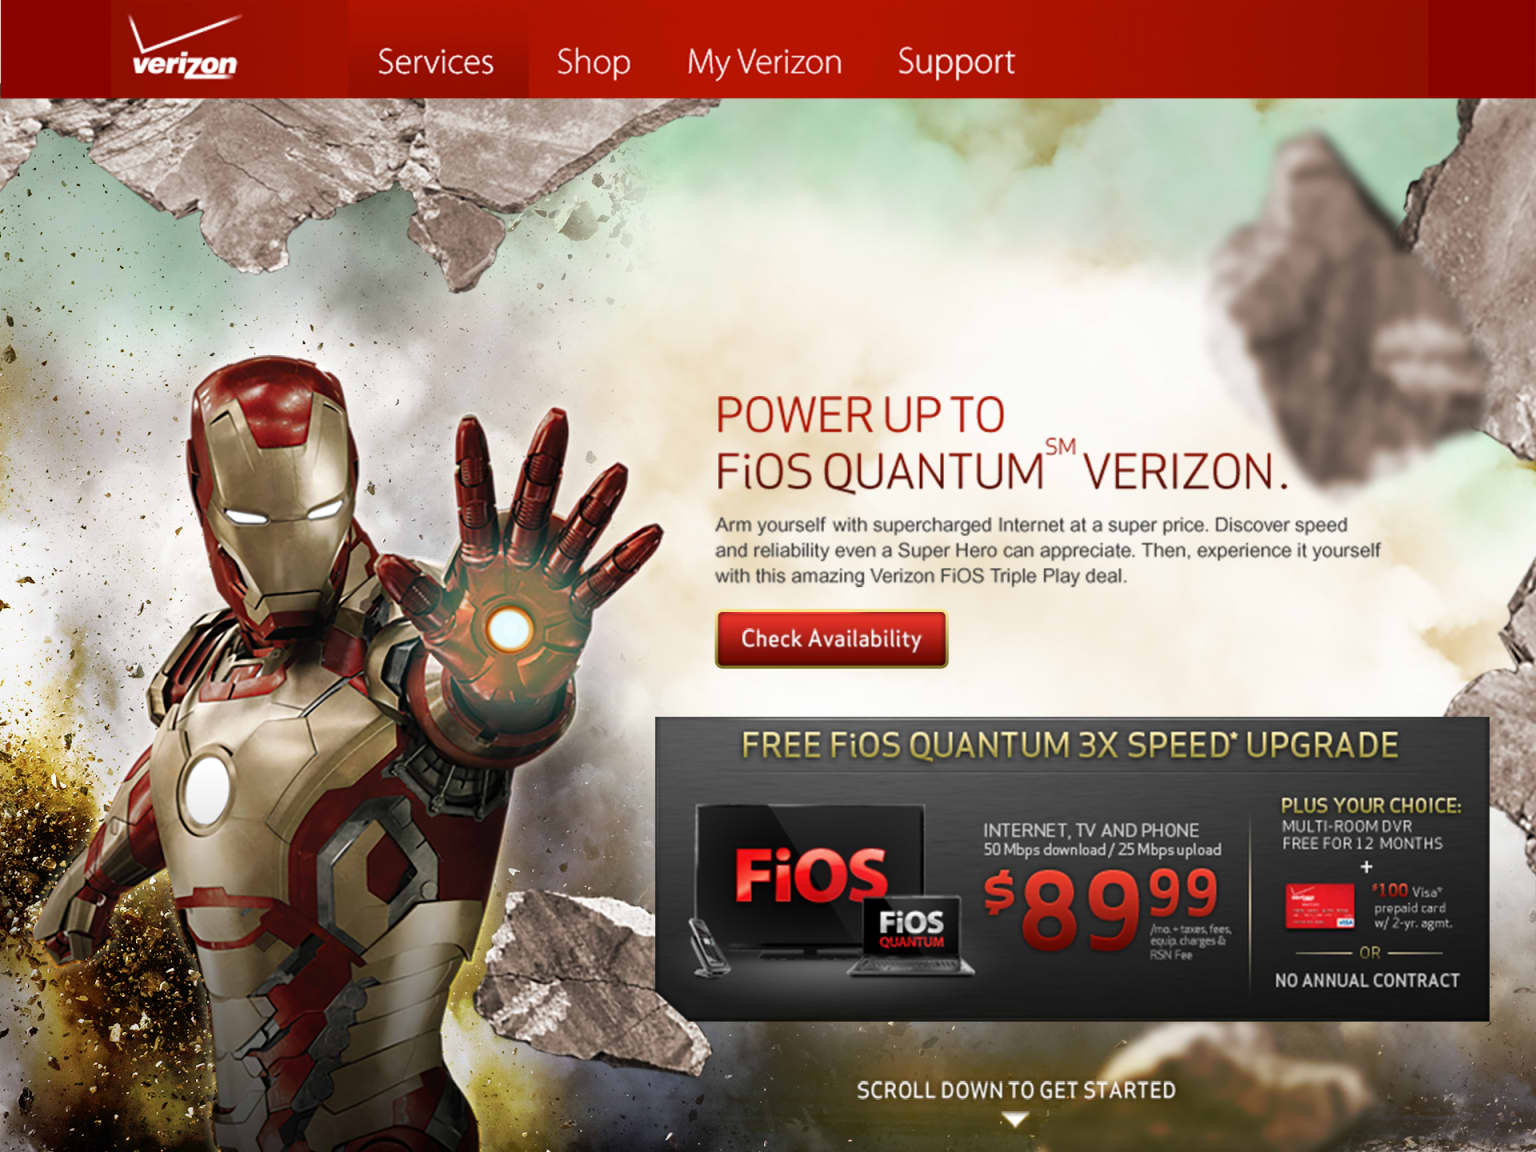 Iron Man & Verizon